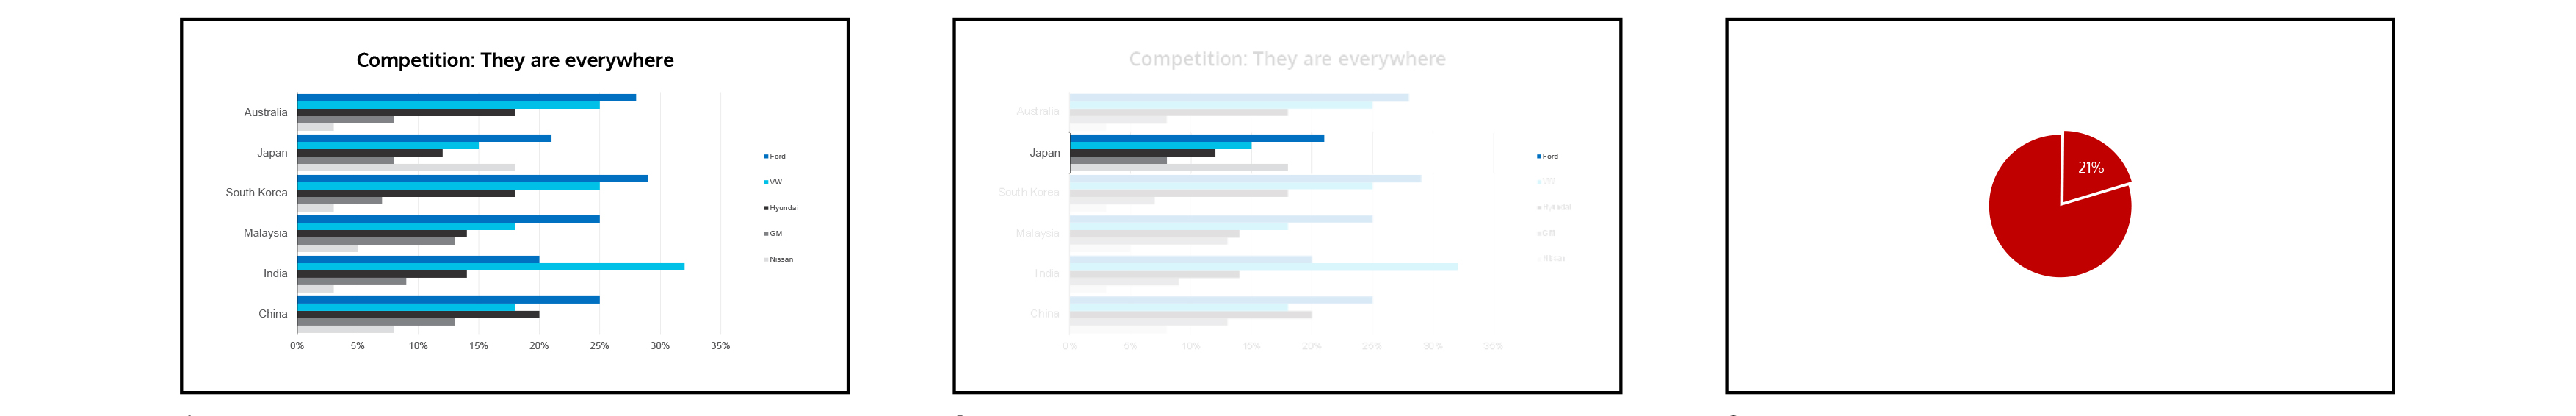 Three slides, the first is a colorful bar graph, the second is the same bar graph with one section highlight, the third is a simple pie chart